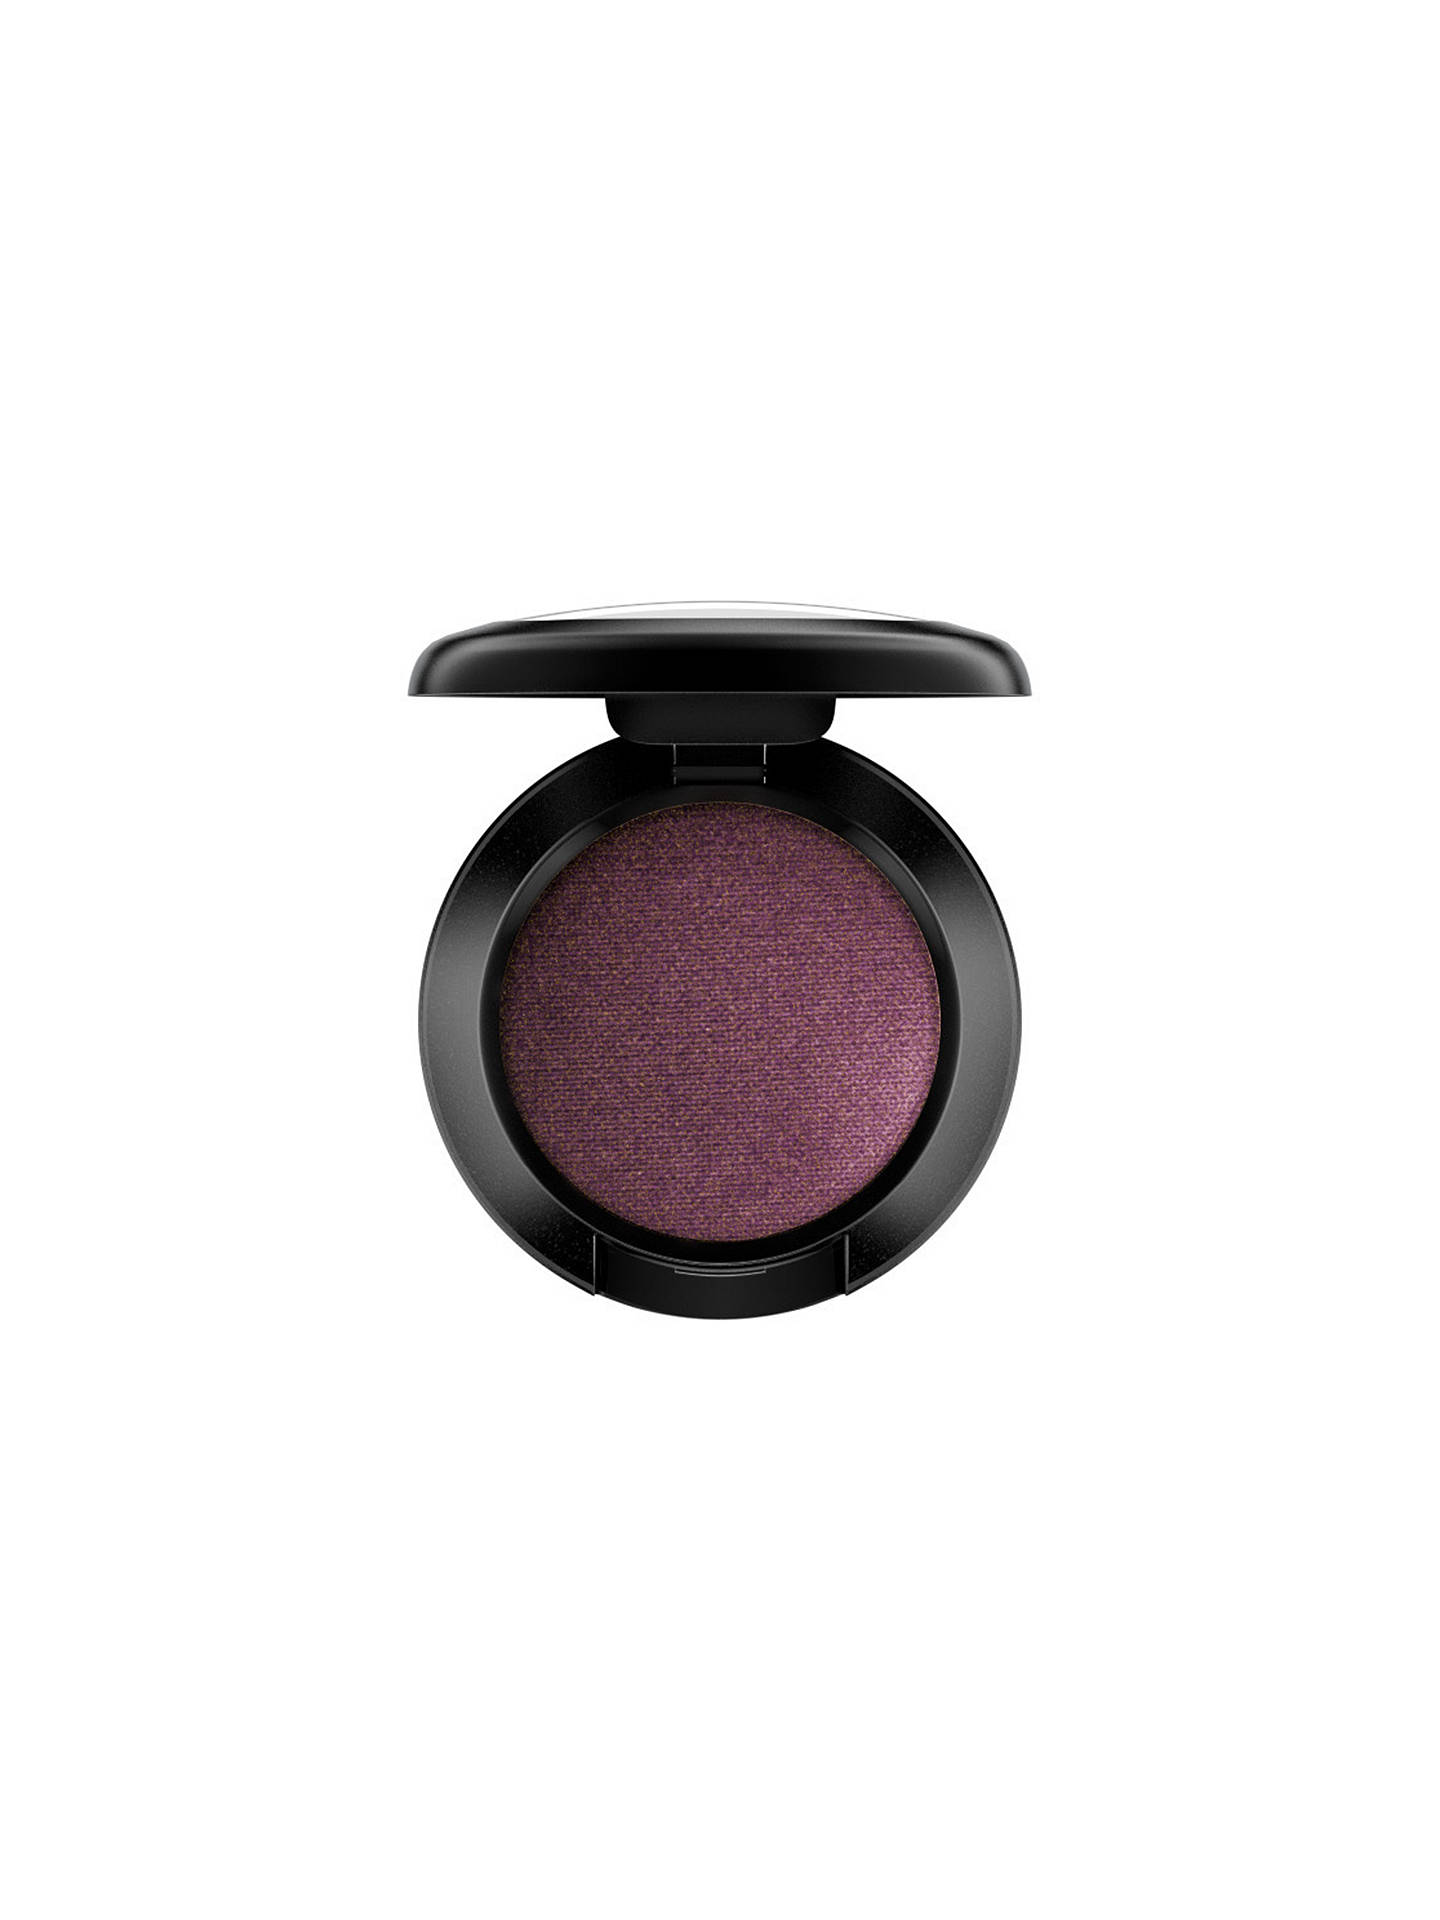 BuyMAC Eyeshadow - Velvet, Beauty Marked Online at johnlewis.com